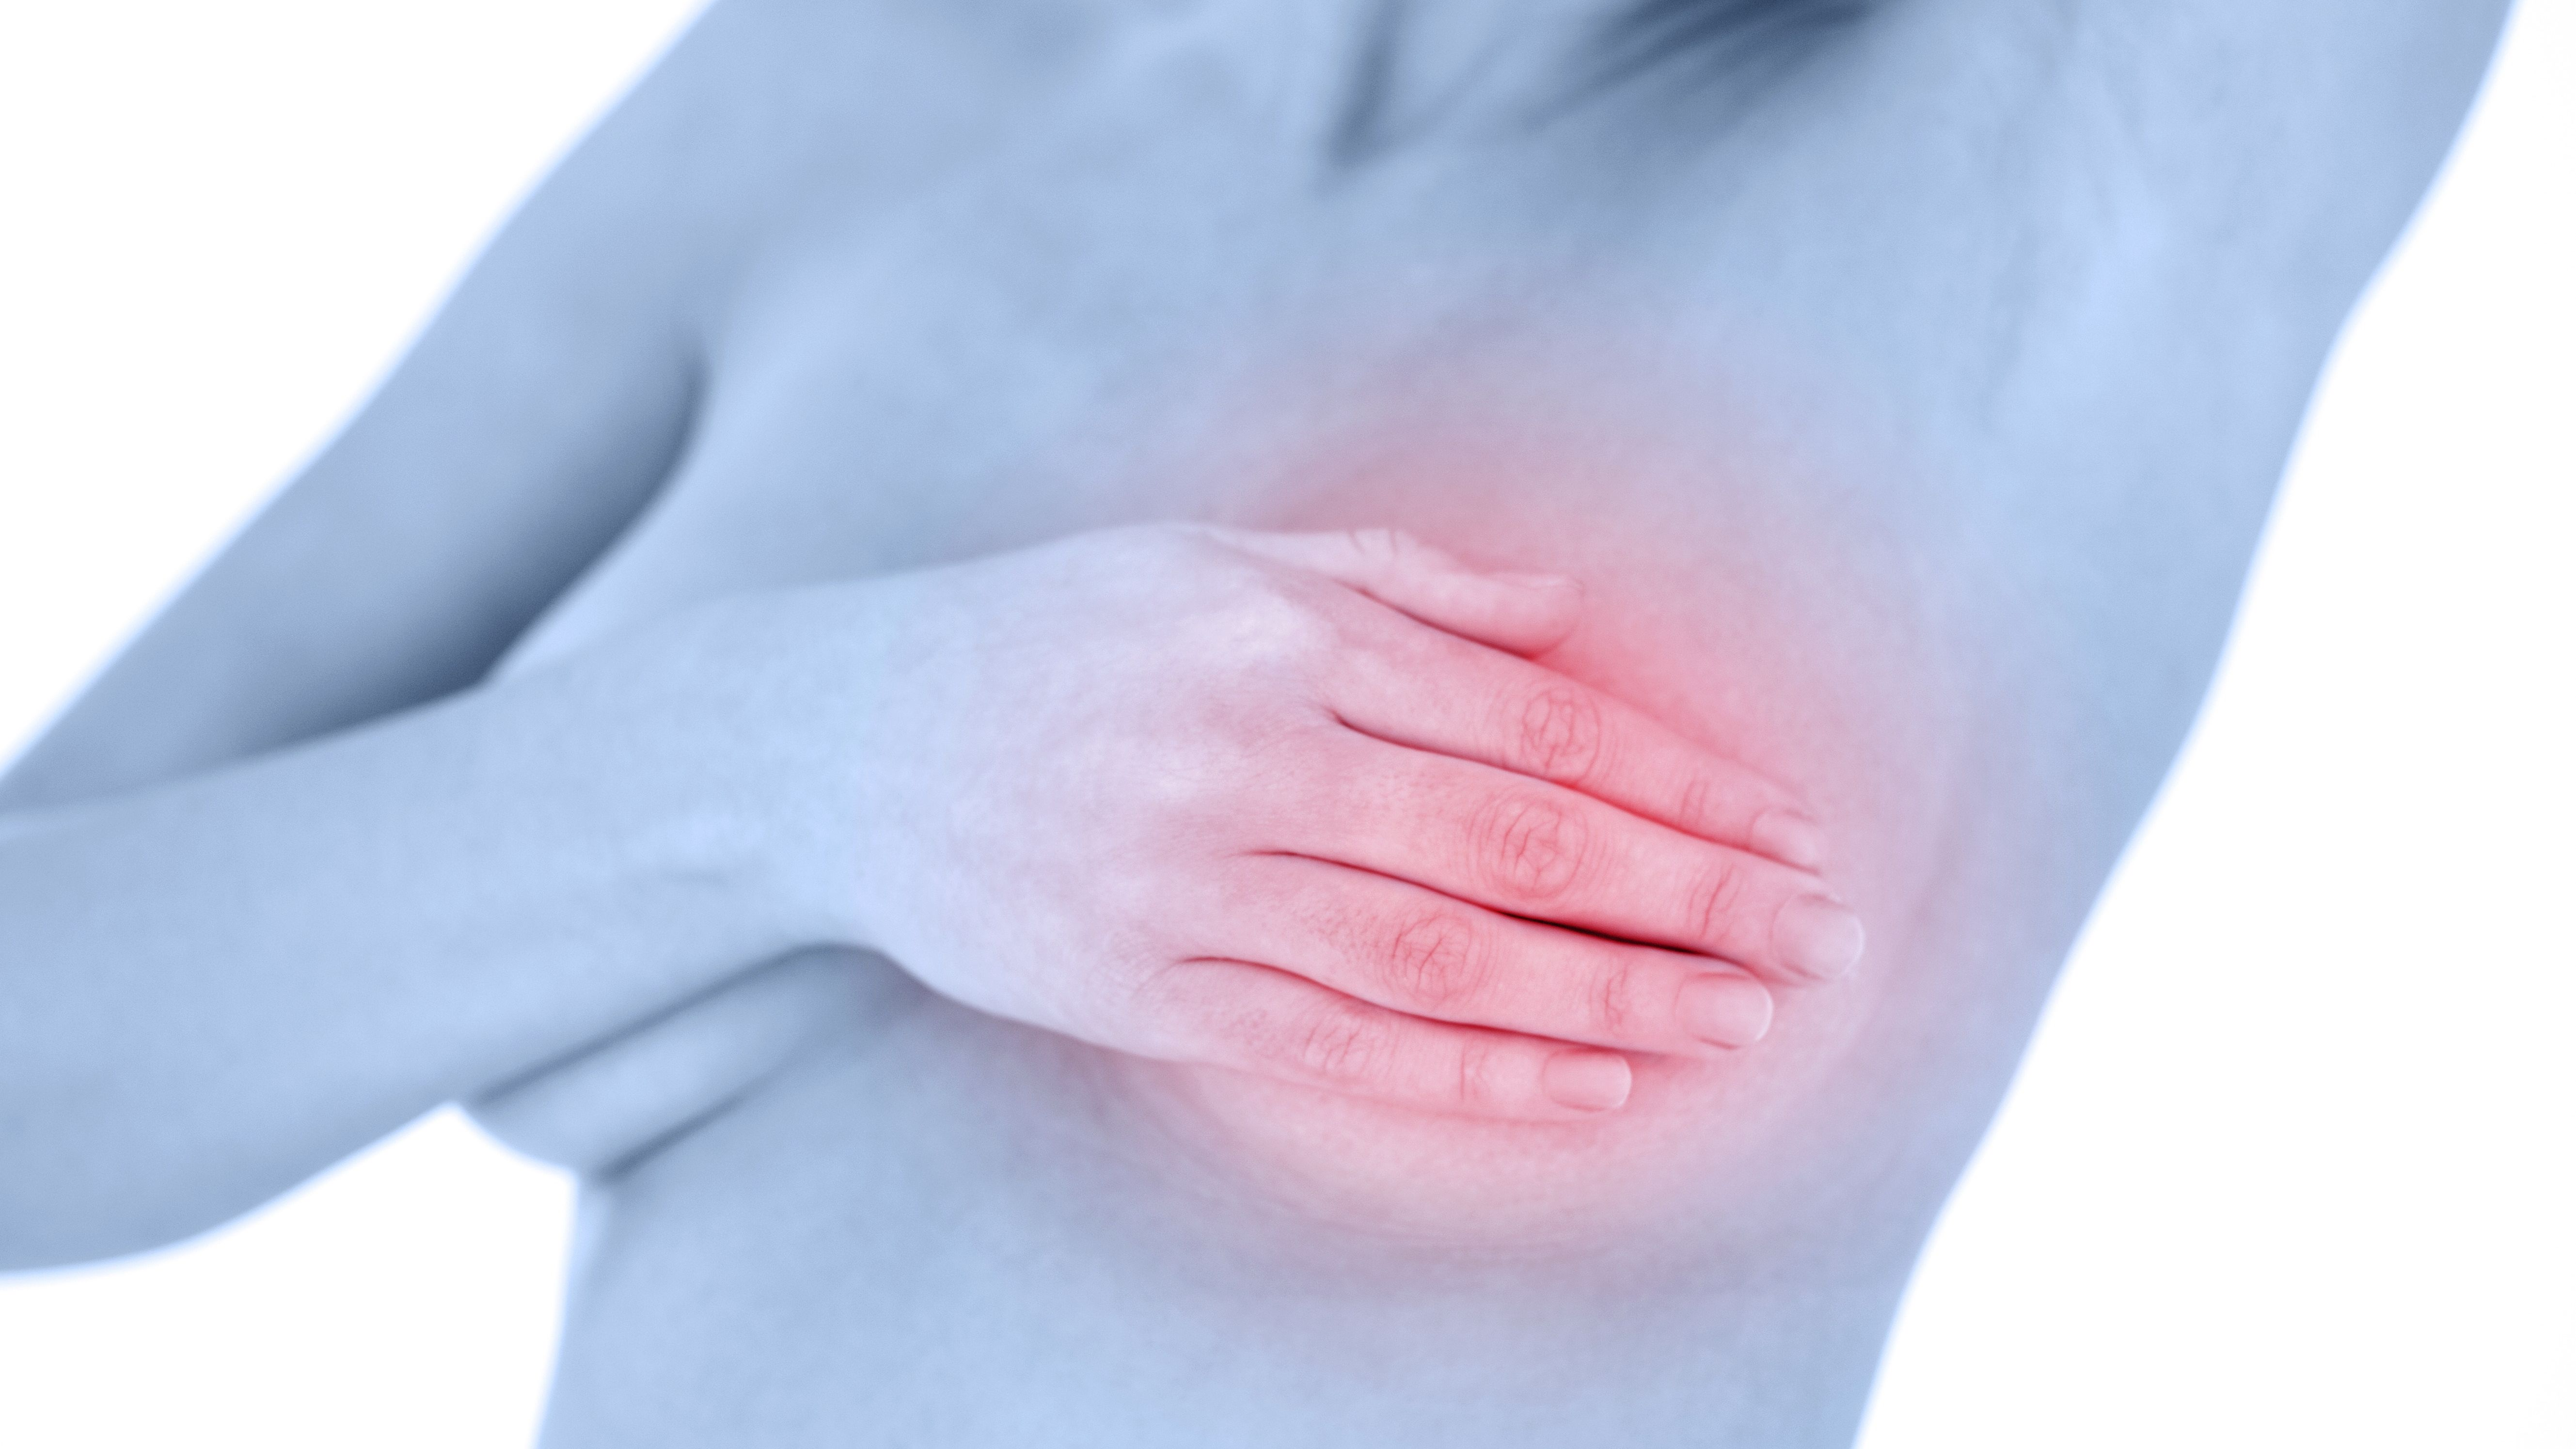 Breast Oil Cysts Causes Diagnosis And Treatment